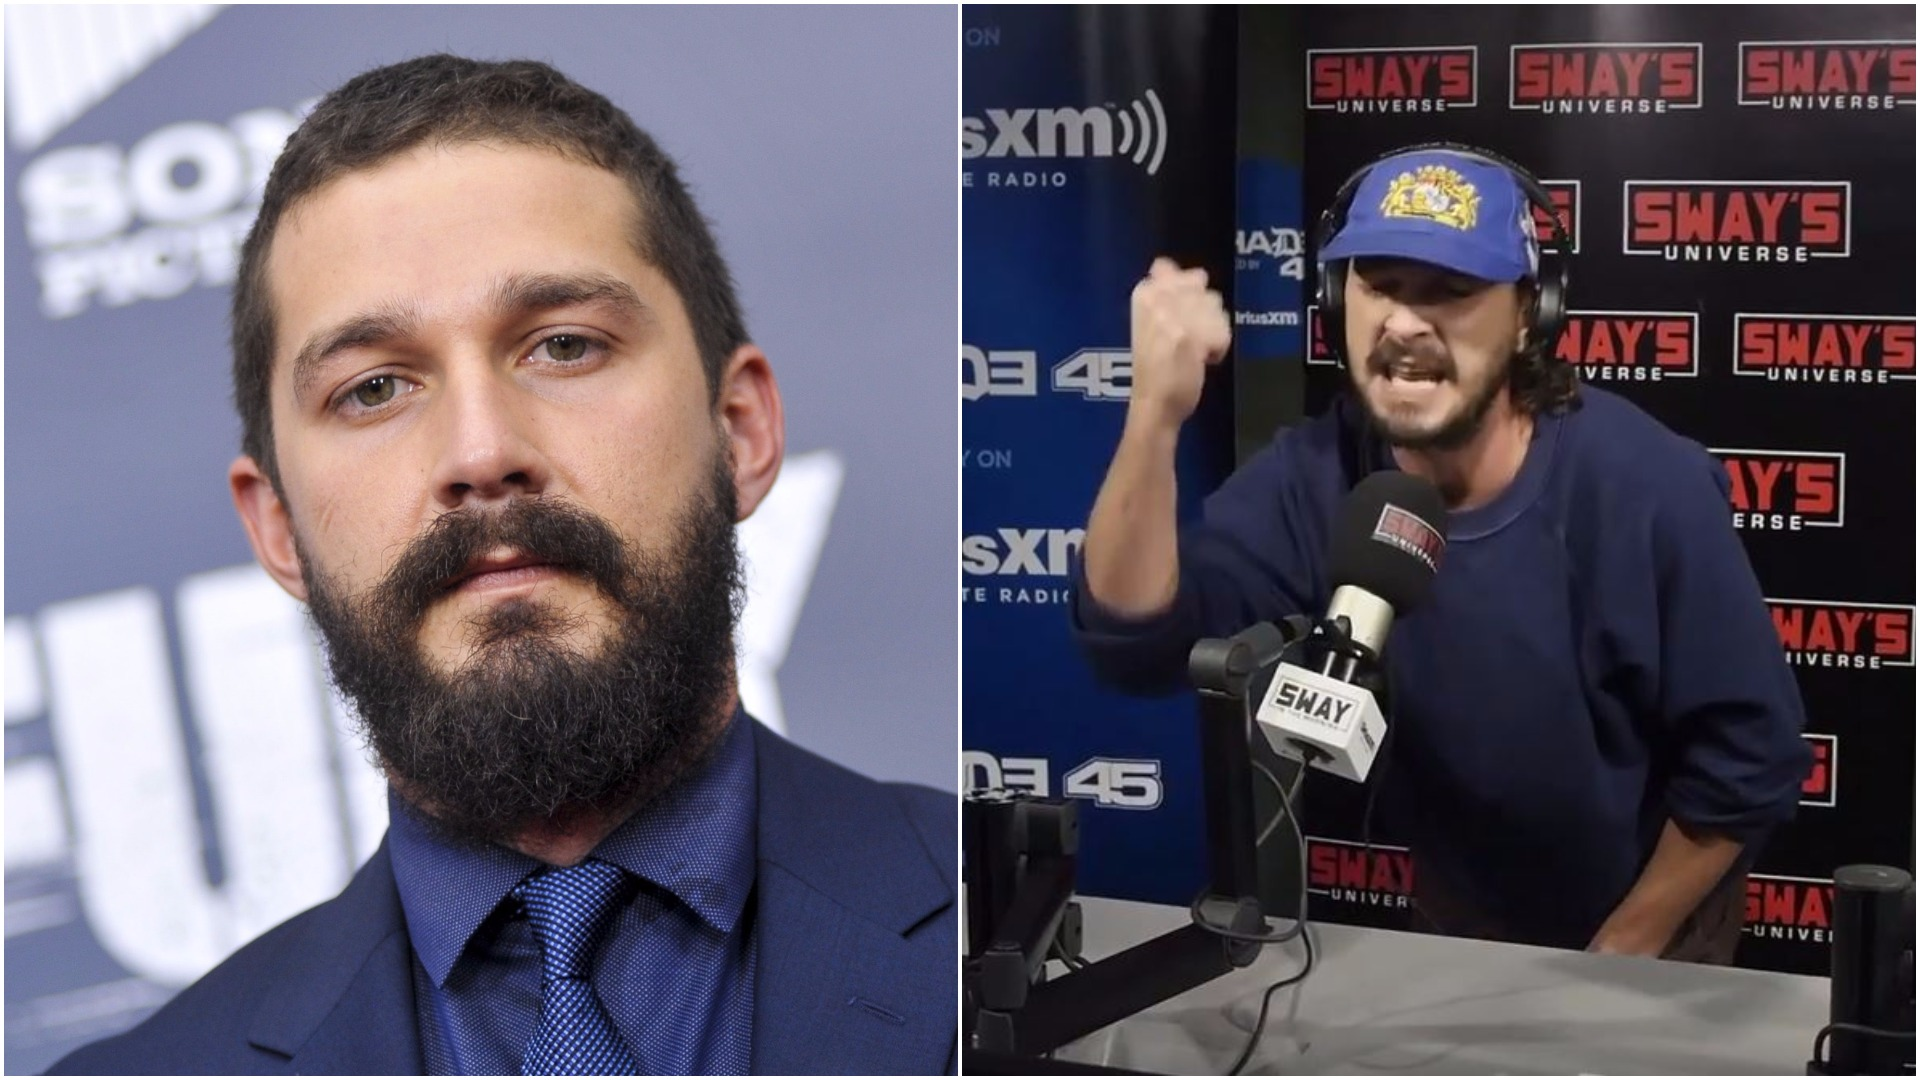 Shia LaBoeuf is officially Hollywood's — and possibly the world's — best rapper